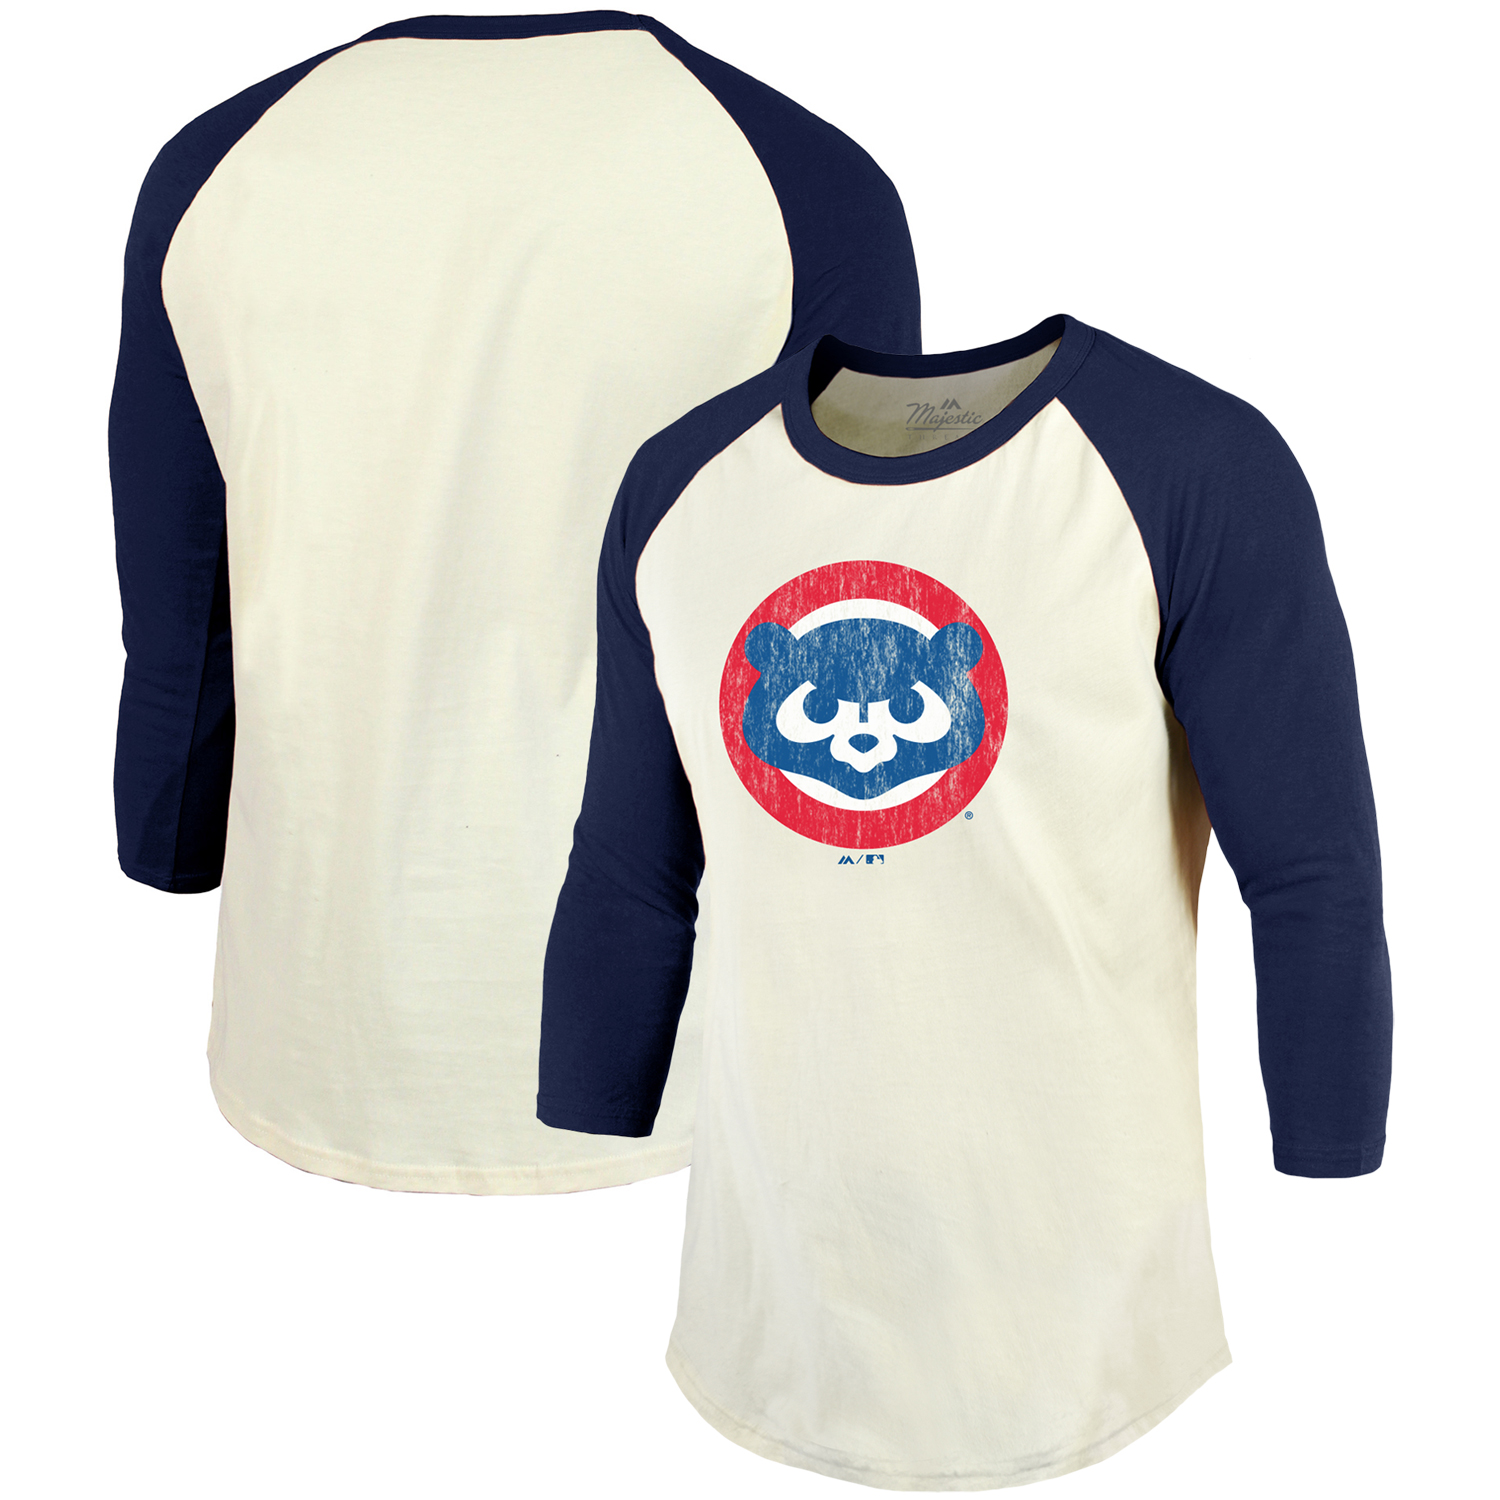 Chicago Cubs Majestic Threads Cooperstown Collection Raglan 3/4-Sleeve T-Shirt - Cream/Navy